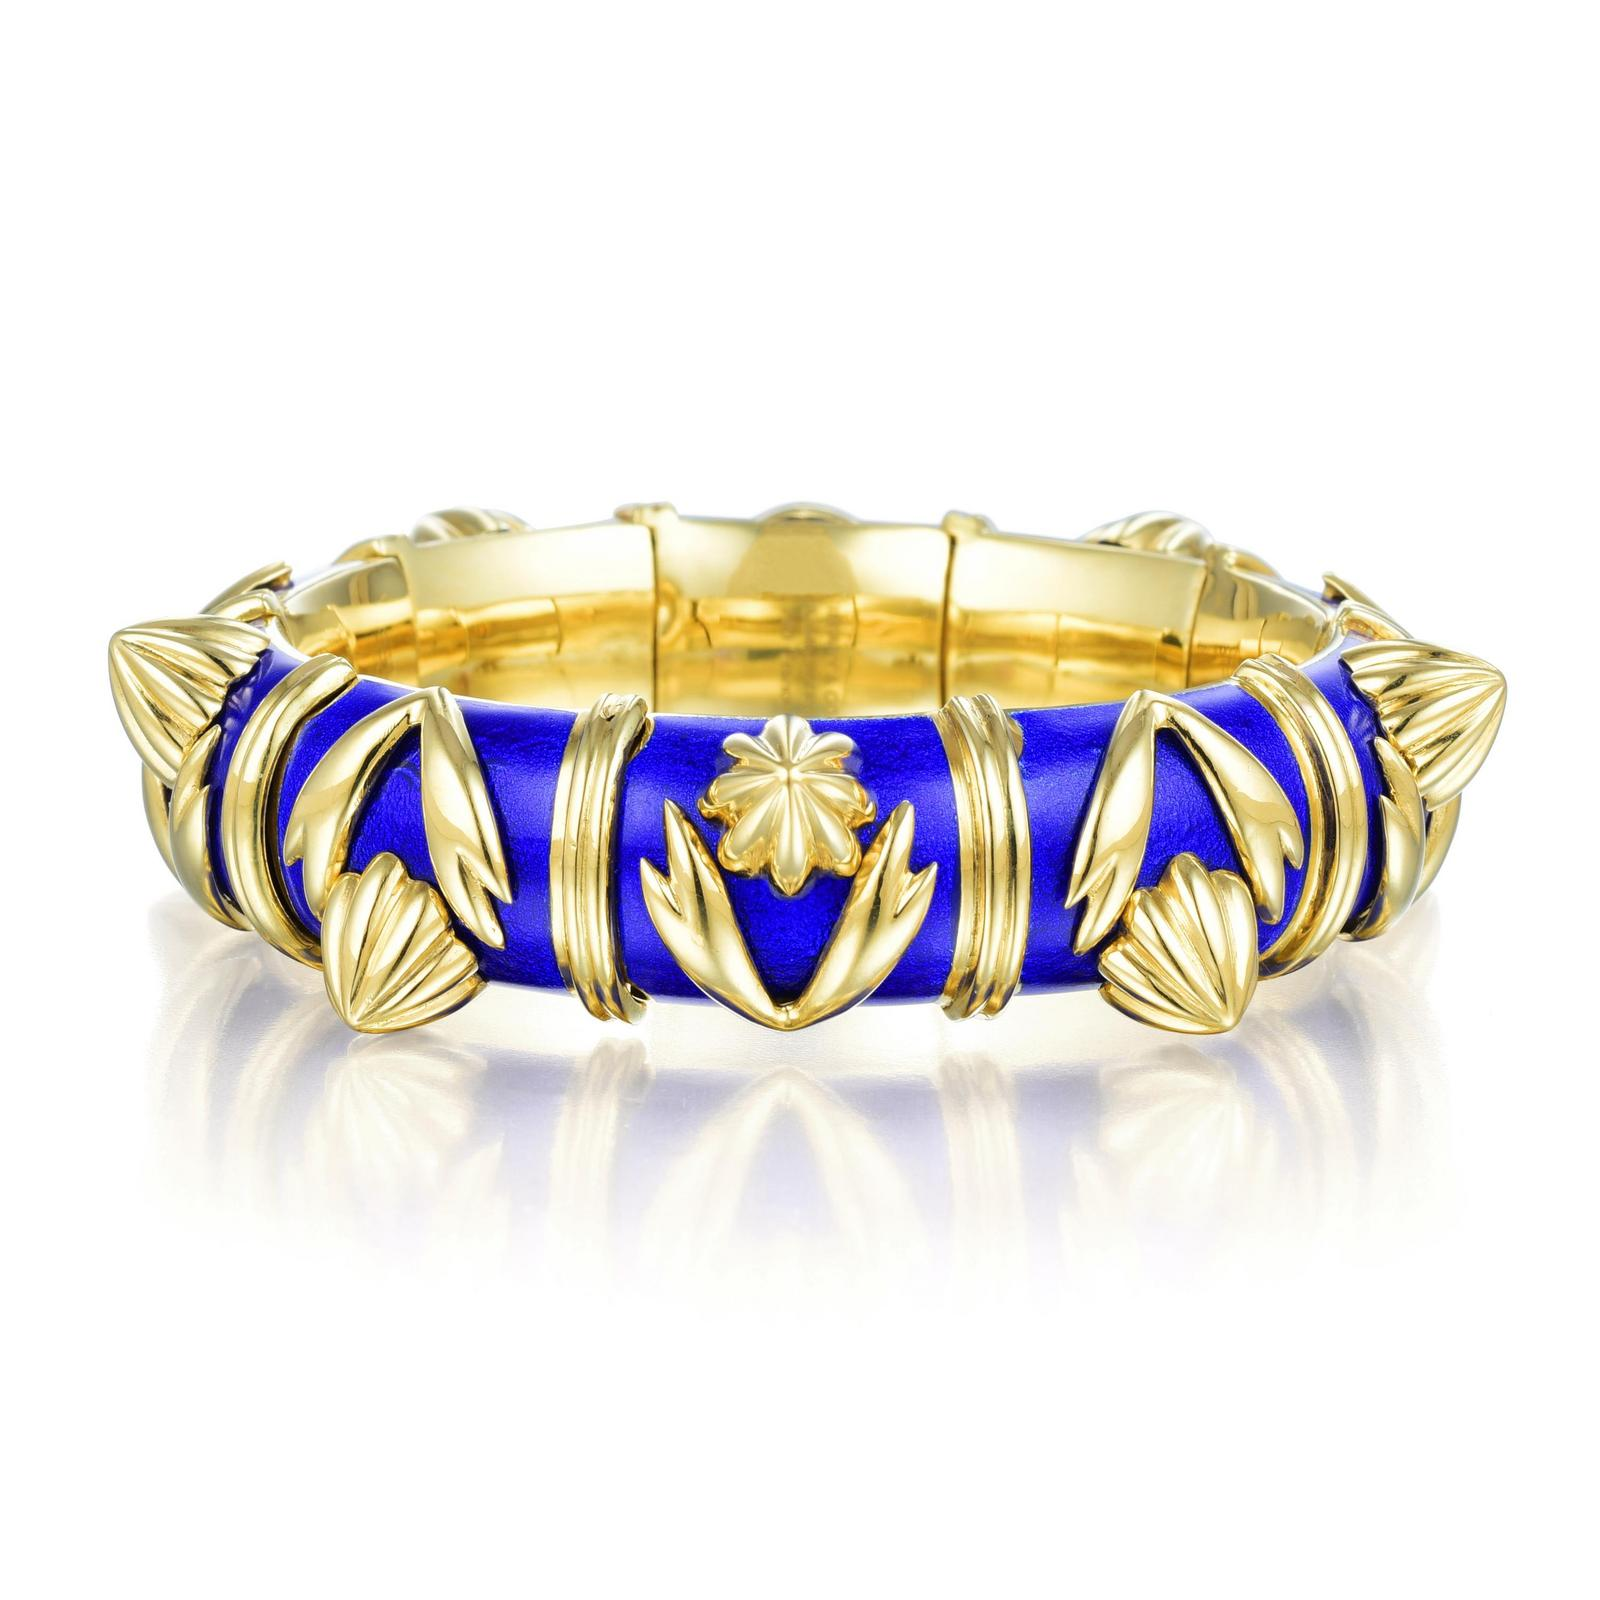 b5be277a2 Tiffany & Co. Schlumberger Gold and Enamel Bangle Bracelet | Fortuna ...